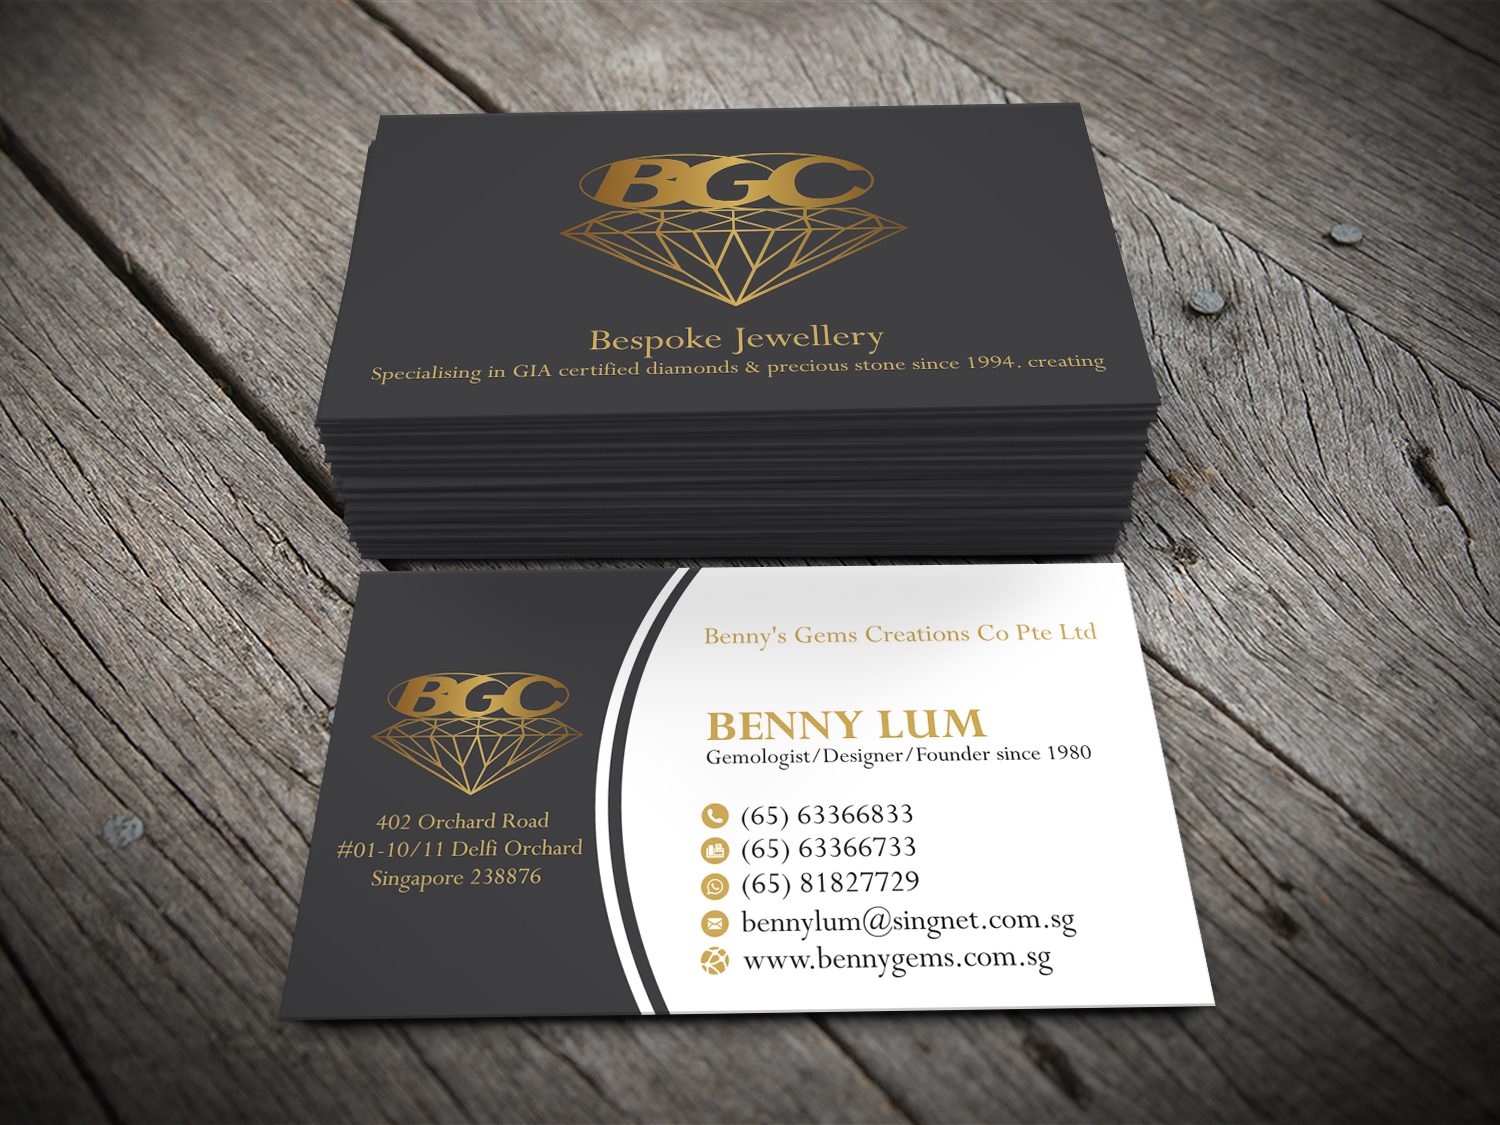 Professional upmarket jewelry store business card design for a business card design by alhemique1 for this project design 12678087 reheart